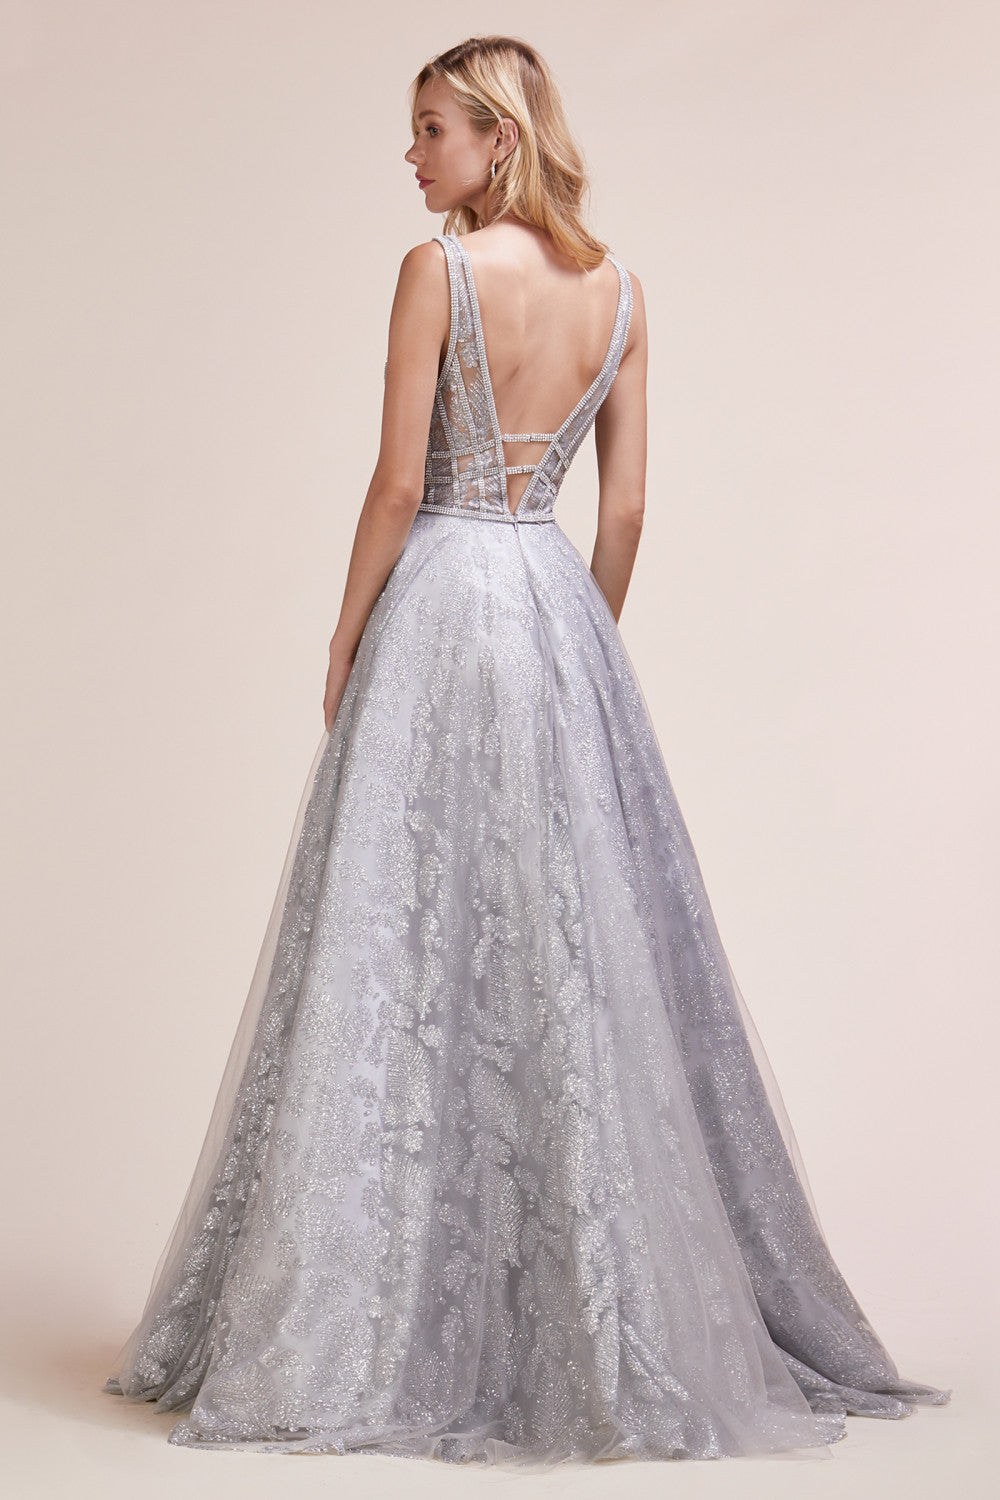 AL Crystal Cage Silver Gown